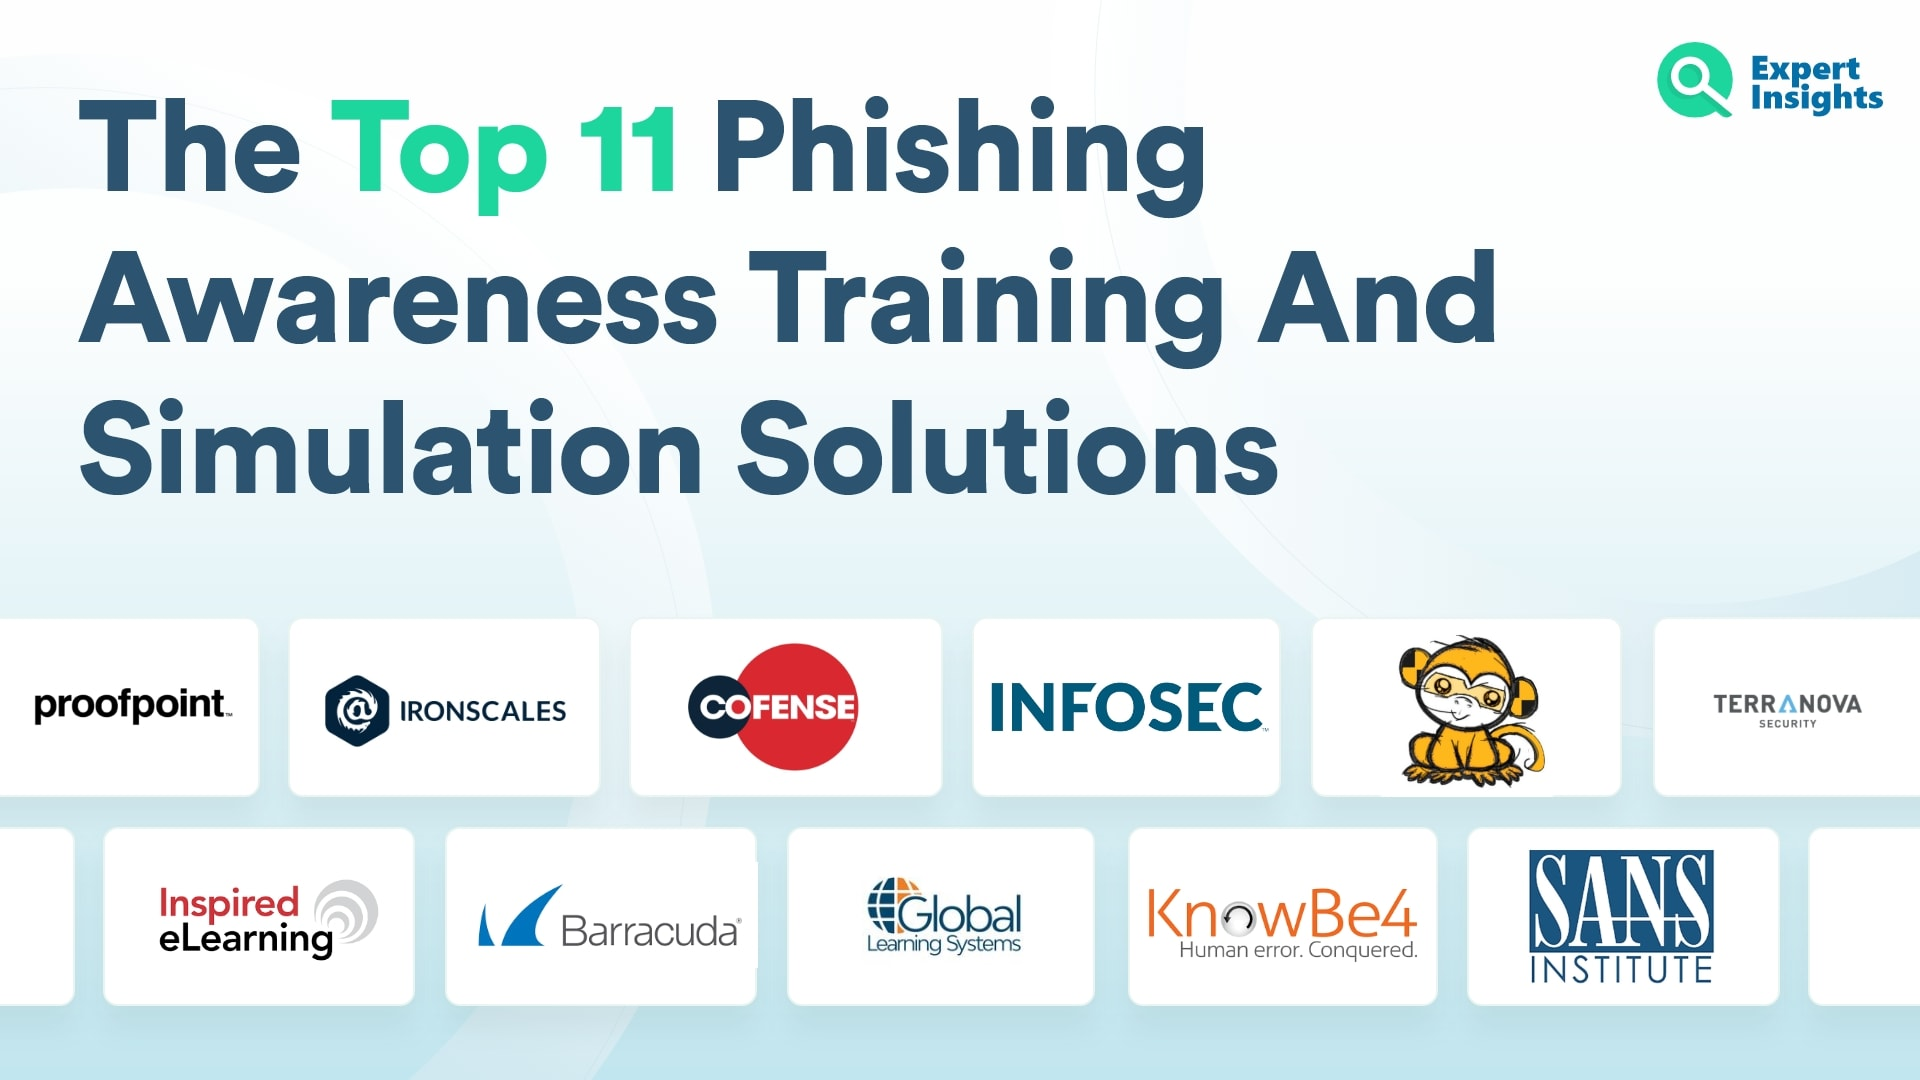 Top 11 Phishing Awareness Traiing And Simulation Solutions - Expert Insights